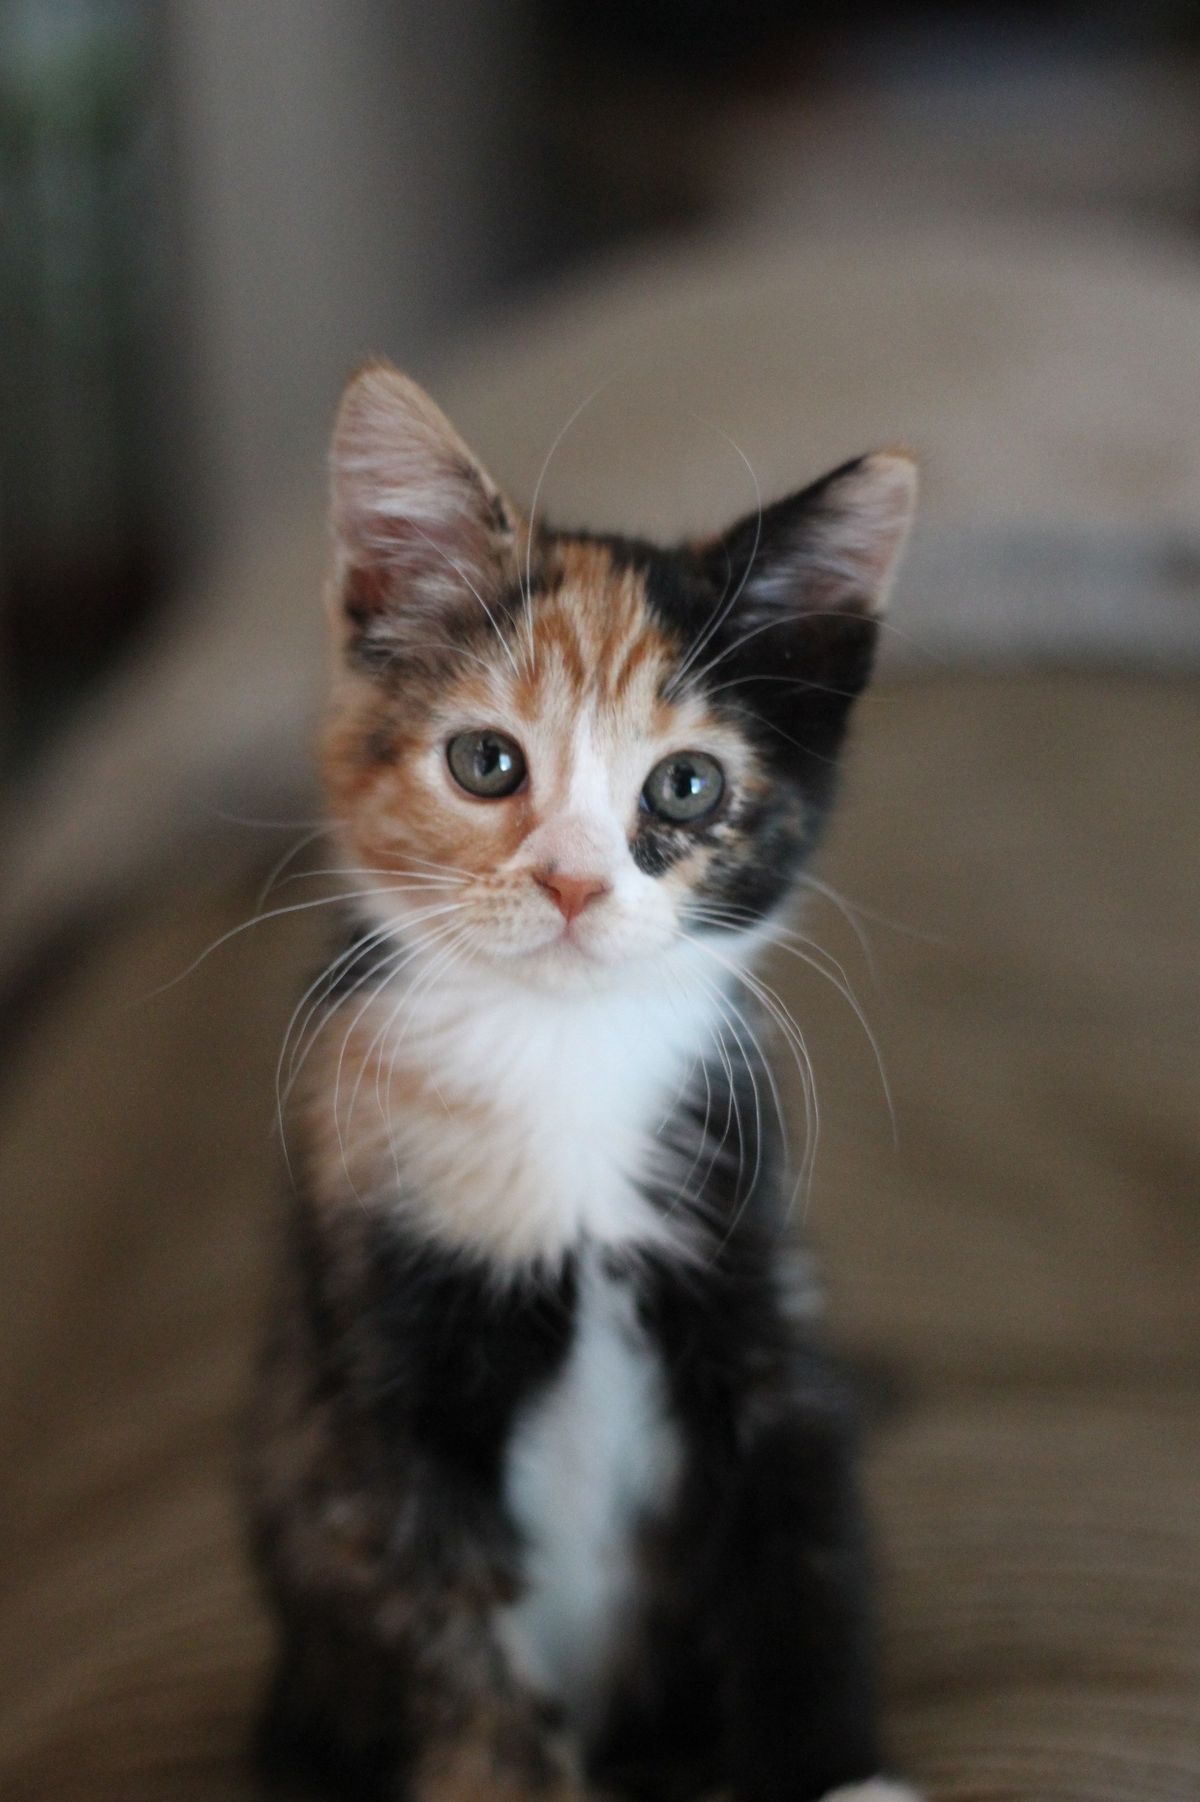 What A Sweet Little Calico Baby And Like Omg Get Some Yourself Some Pawtastic Adorable Cat Apparel Cats Cute Cats Pretty Cats